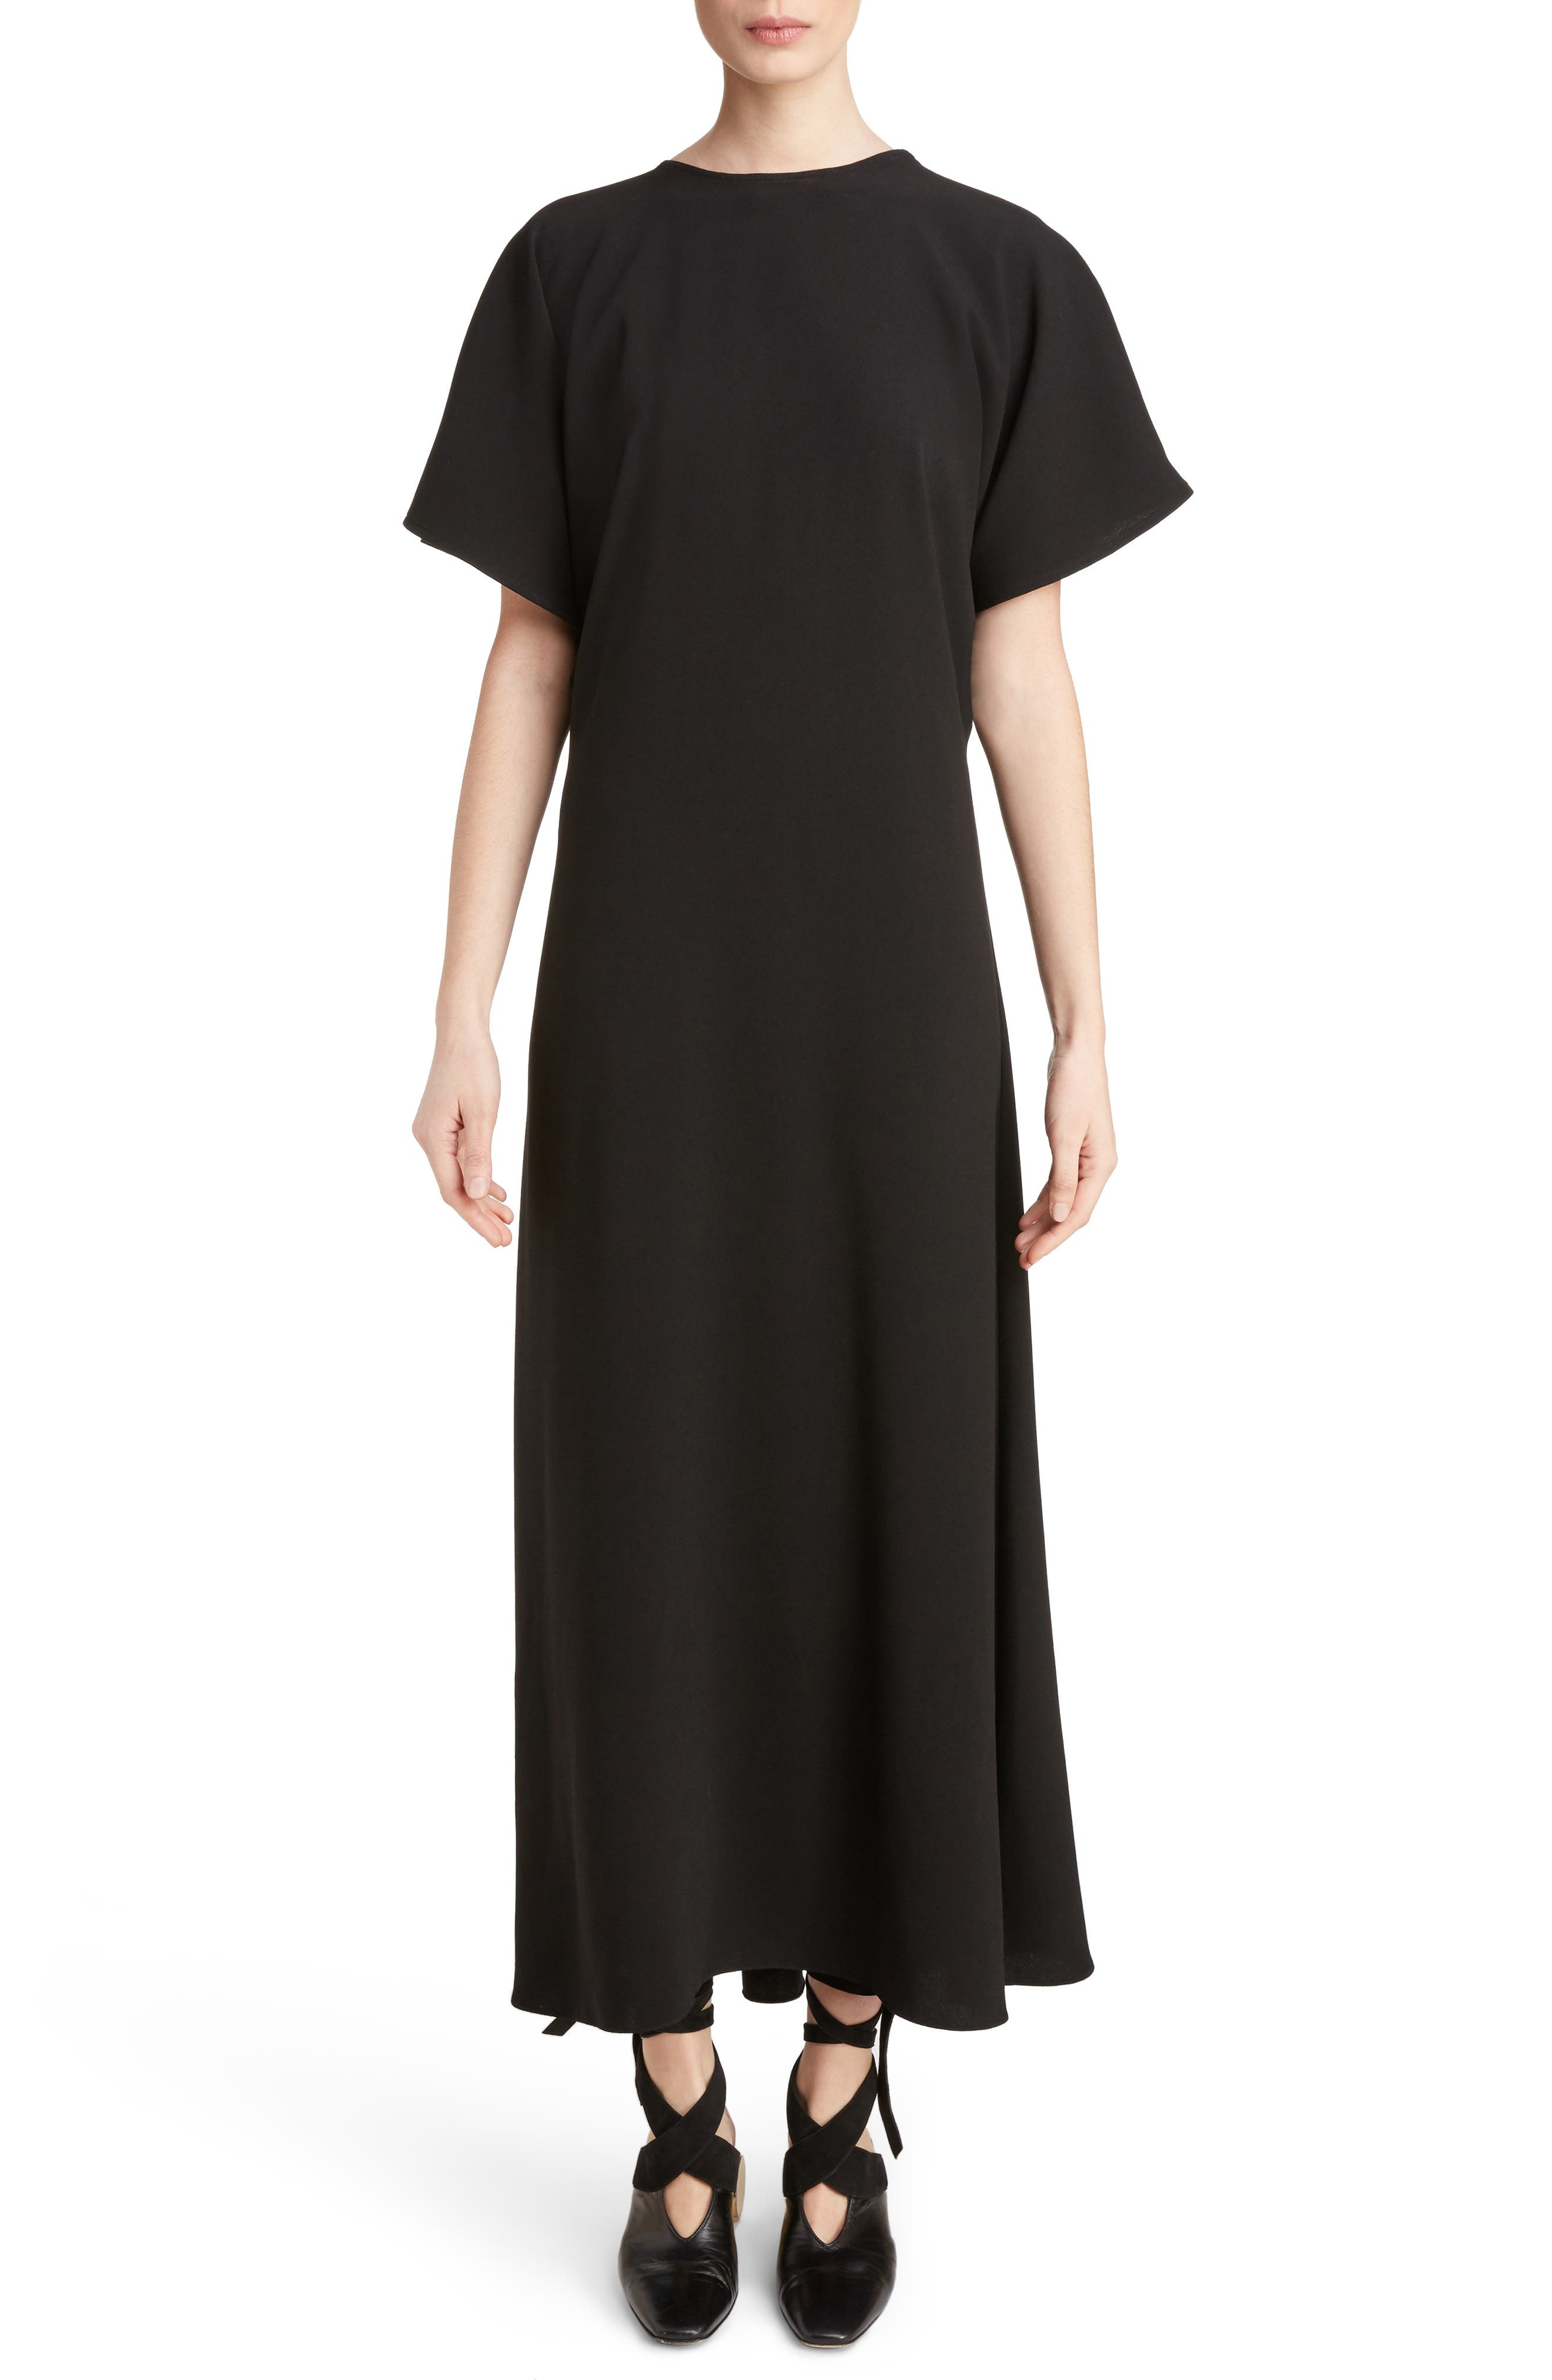 J.W.ANDERSON Cap Sleeve Maxi Dress,                         Main,                         color, Black